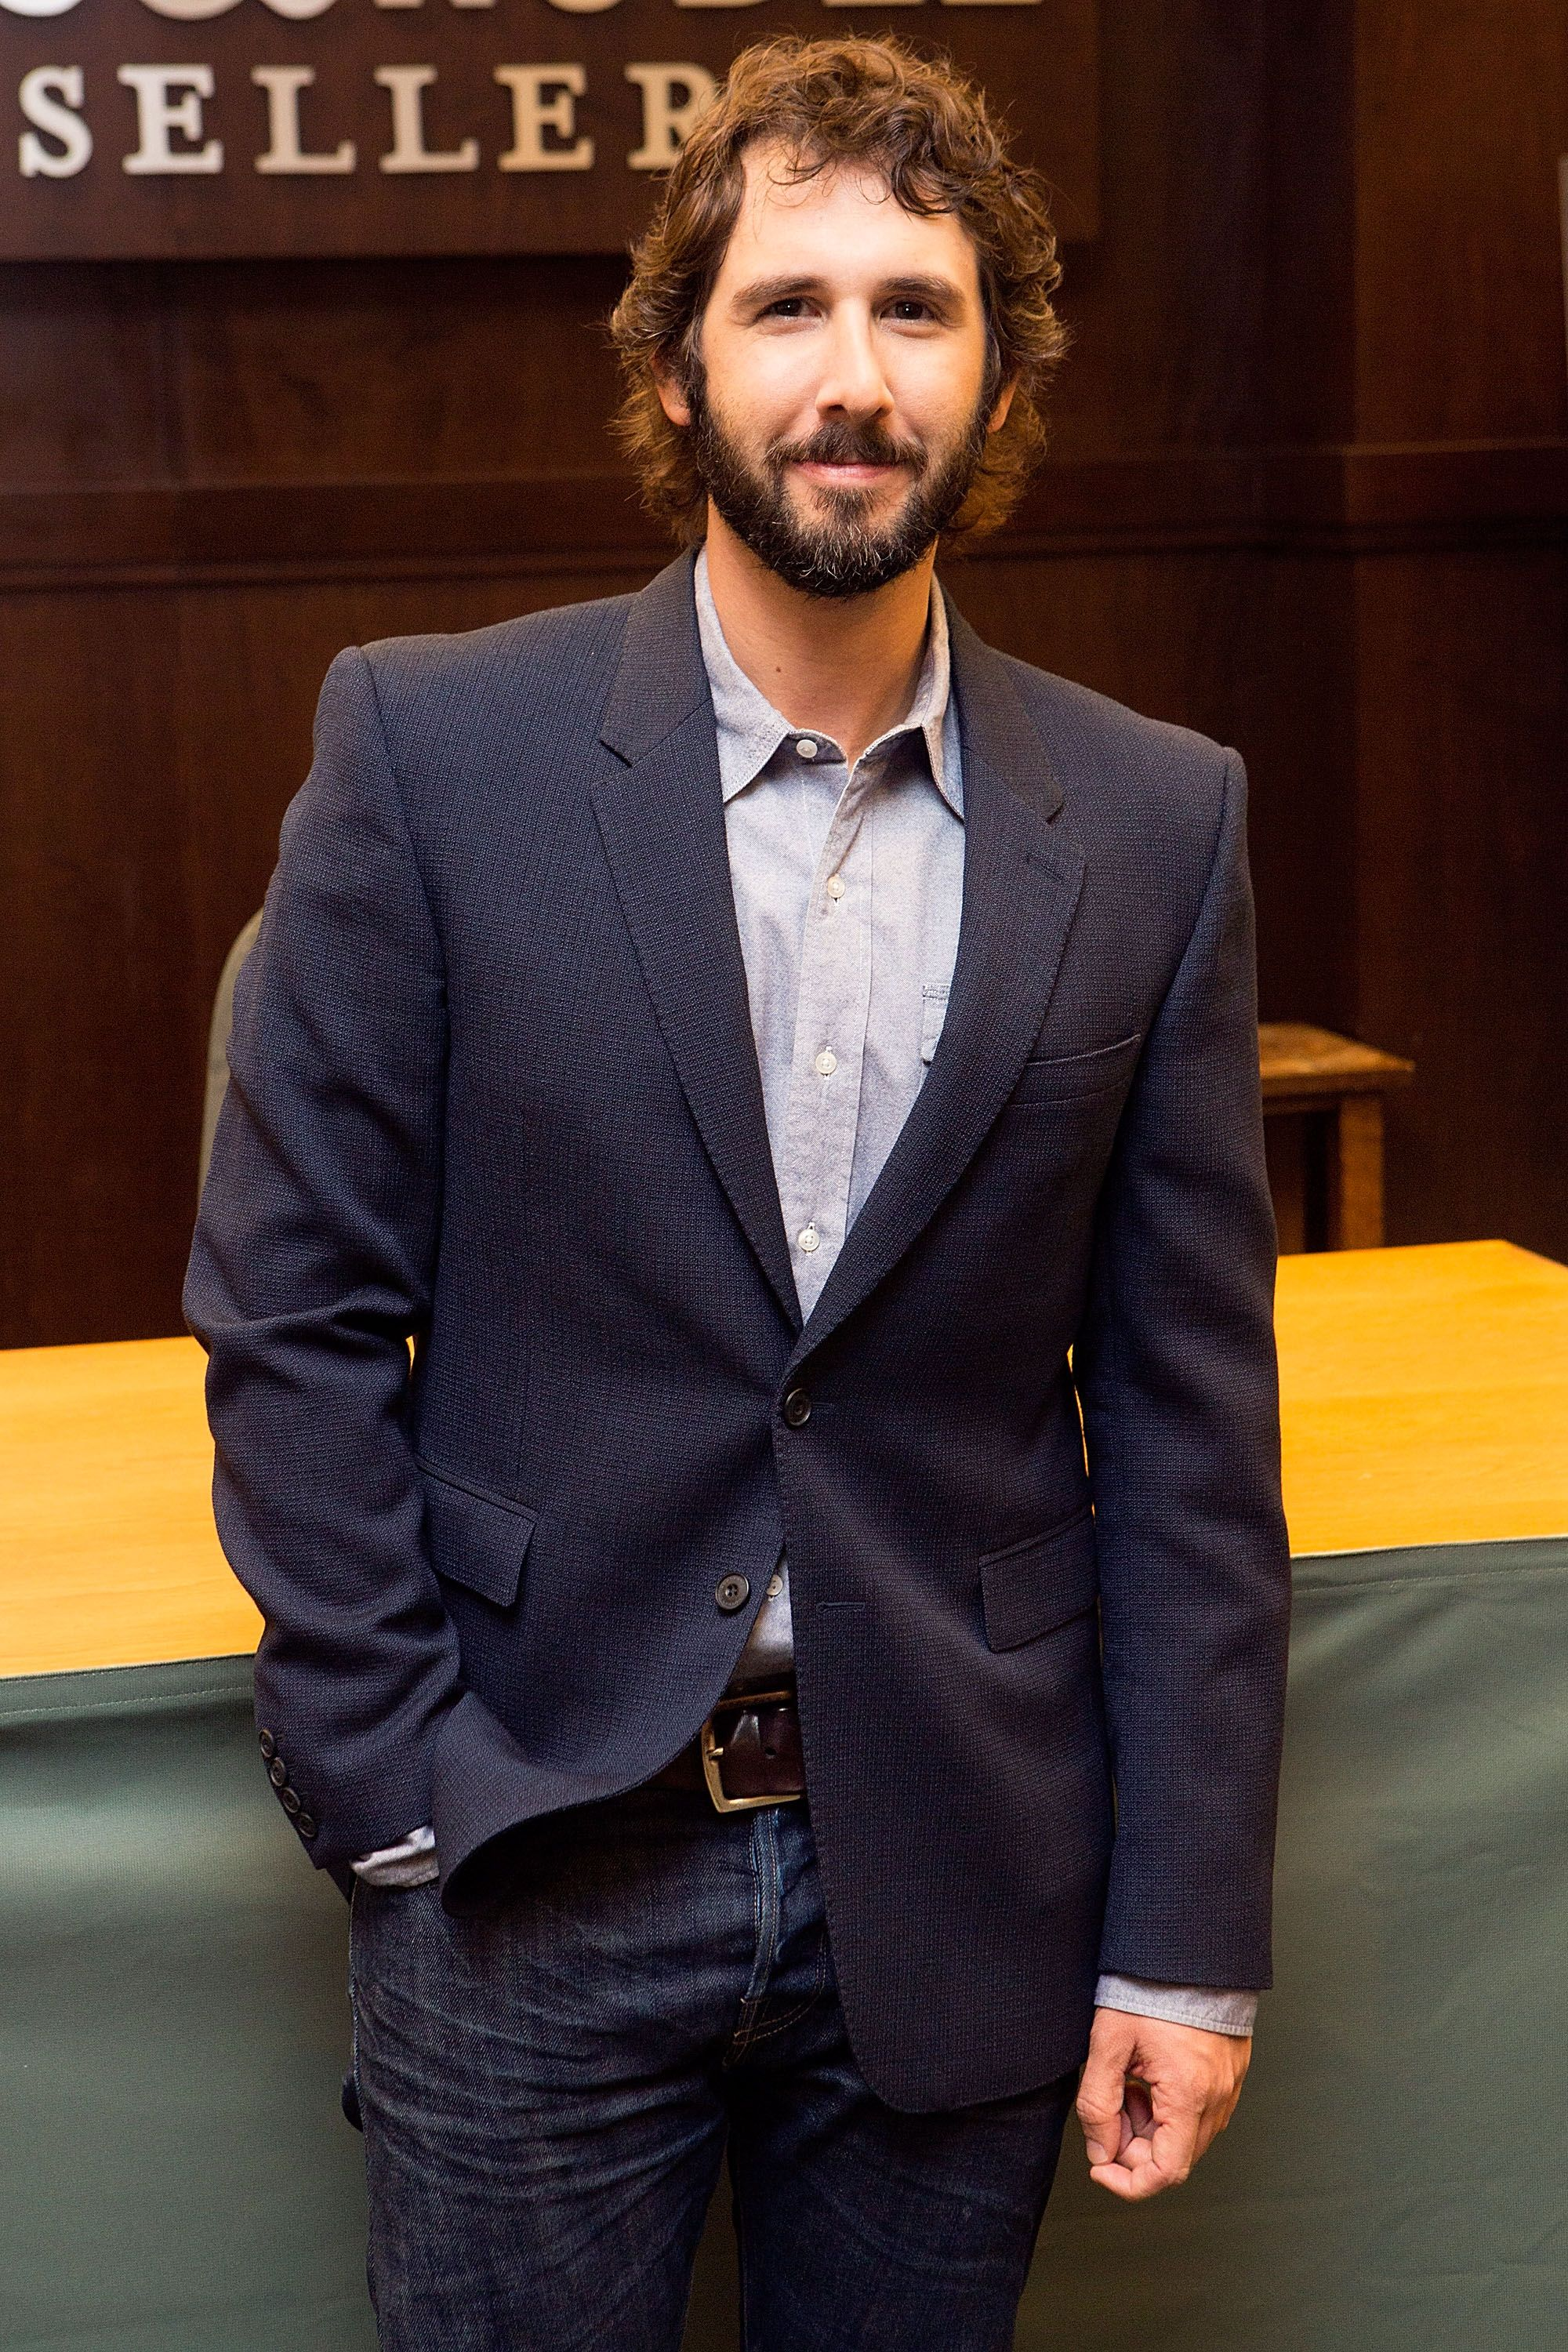 """Josh Groban signs copies of his new album """"Stages"""" at Barnes & Noble bookstore on May 8, 2015, in Los Angeles, California 